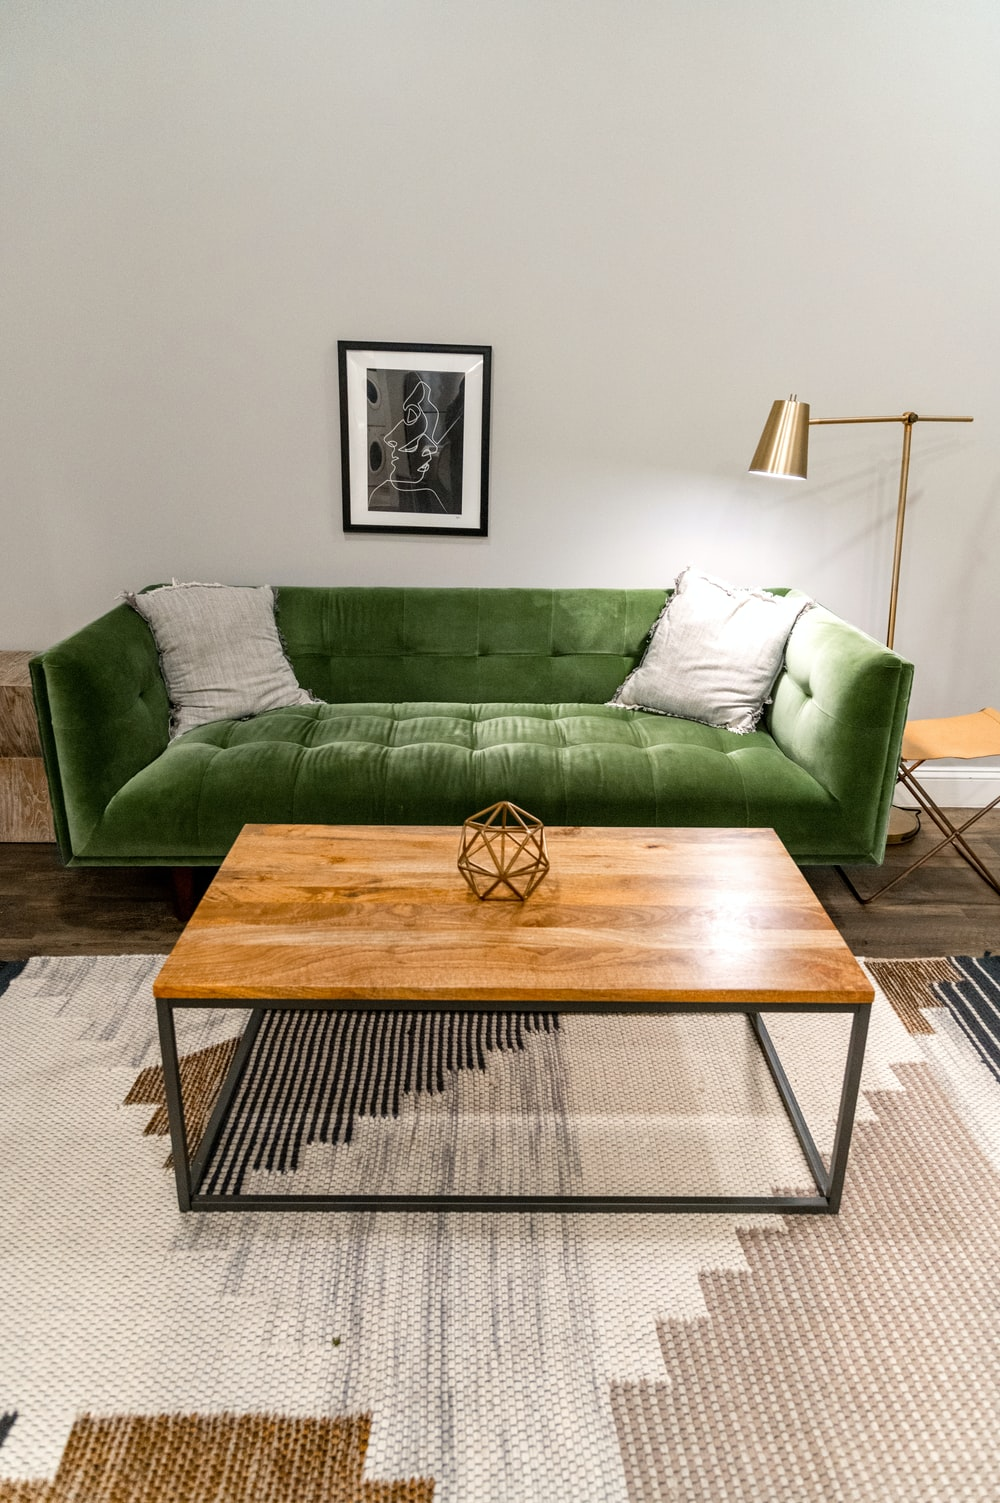 brown wooden table near green sofa